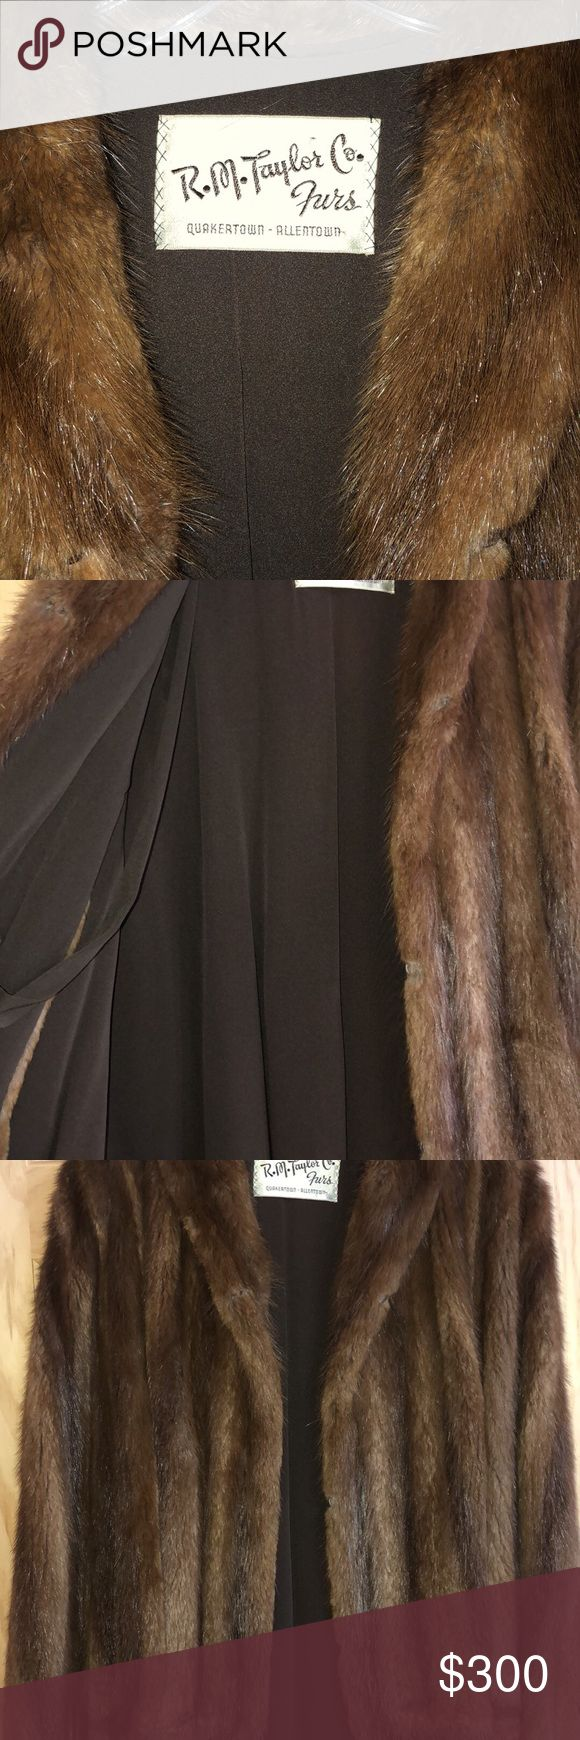 R. M. Taylor & co. Brown genuine fur coat. Genuine fur cape style coat. Great condition nicely kept. Has hook and loop closure and pop-able collar. Soft and very warm. Look luxurious and classy. Would fit a size M-XL R.M. Taylor &Co. Jackets & Coats Capes